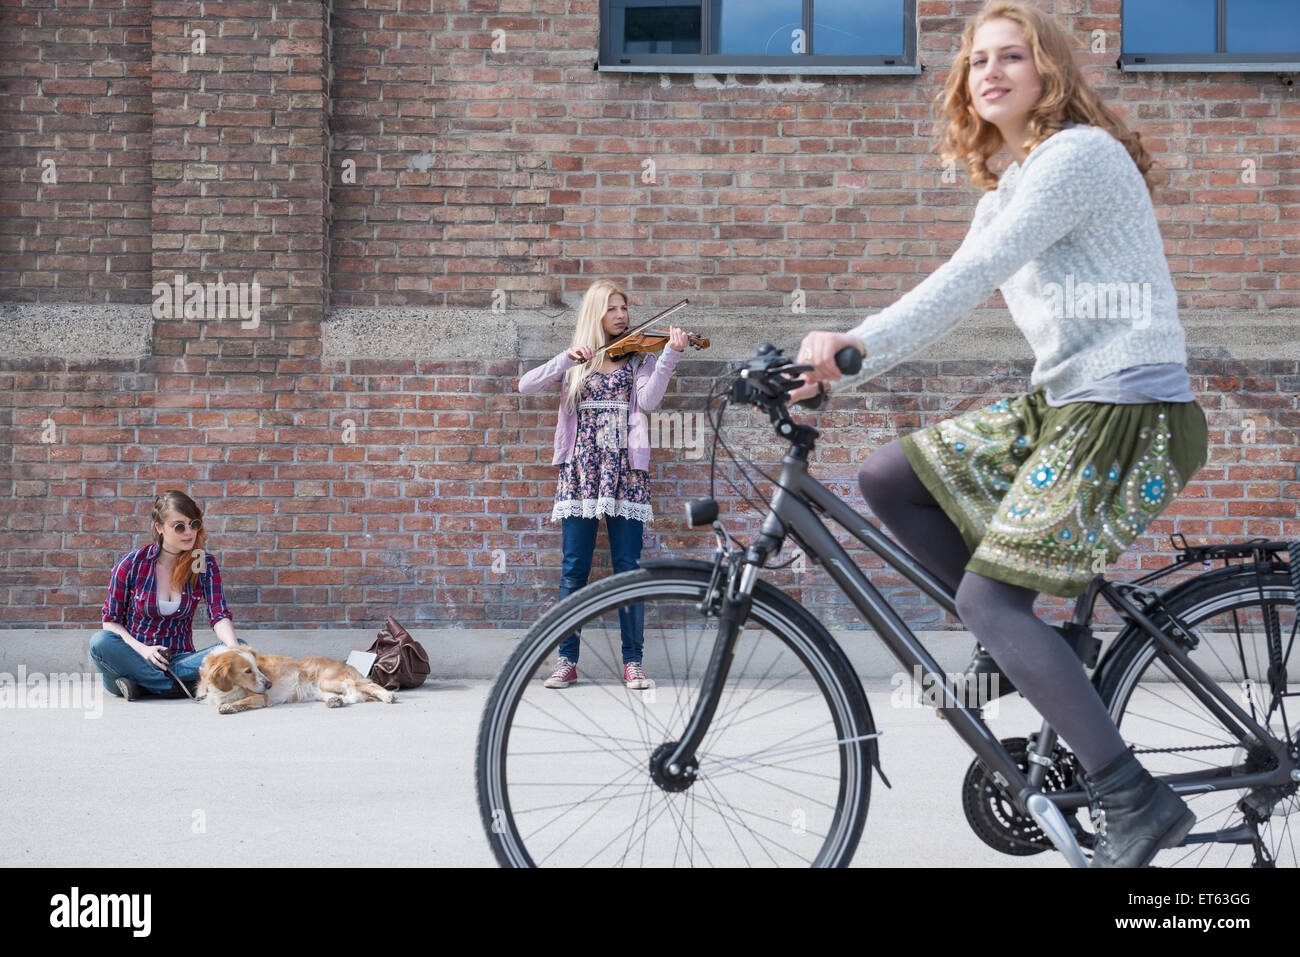 Woman riding bicycle on street with teenage girl playing violin in background, Munich, Bavaria, Germany Stock Photo